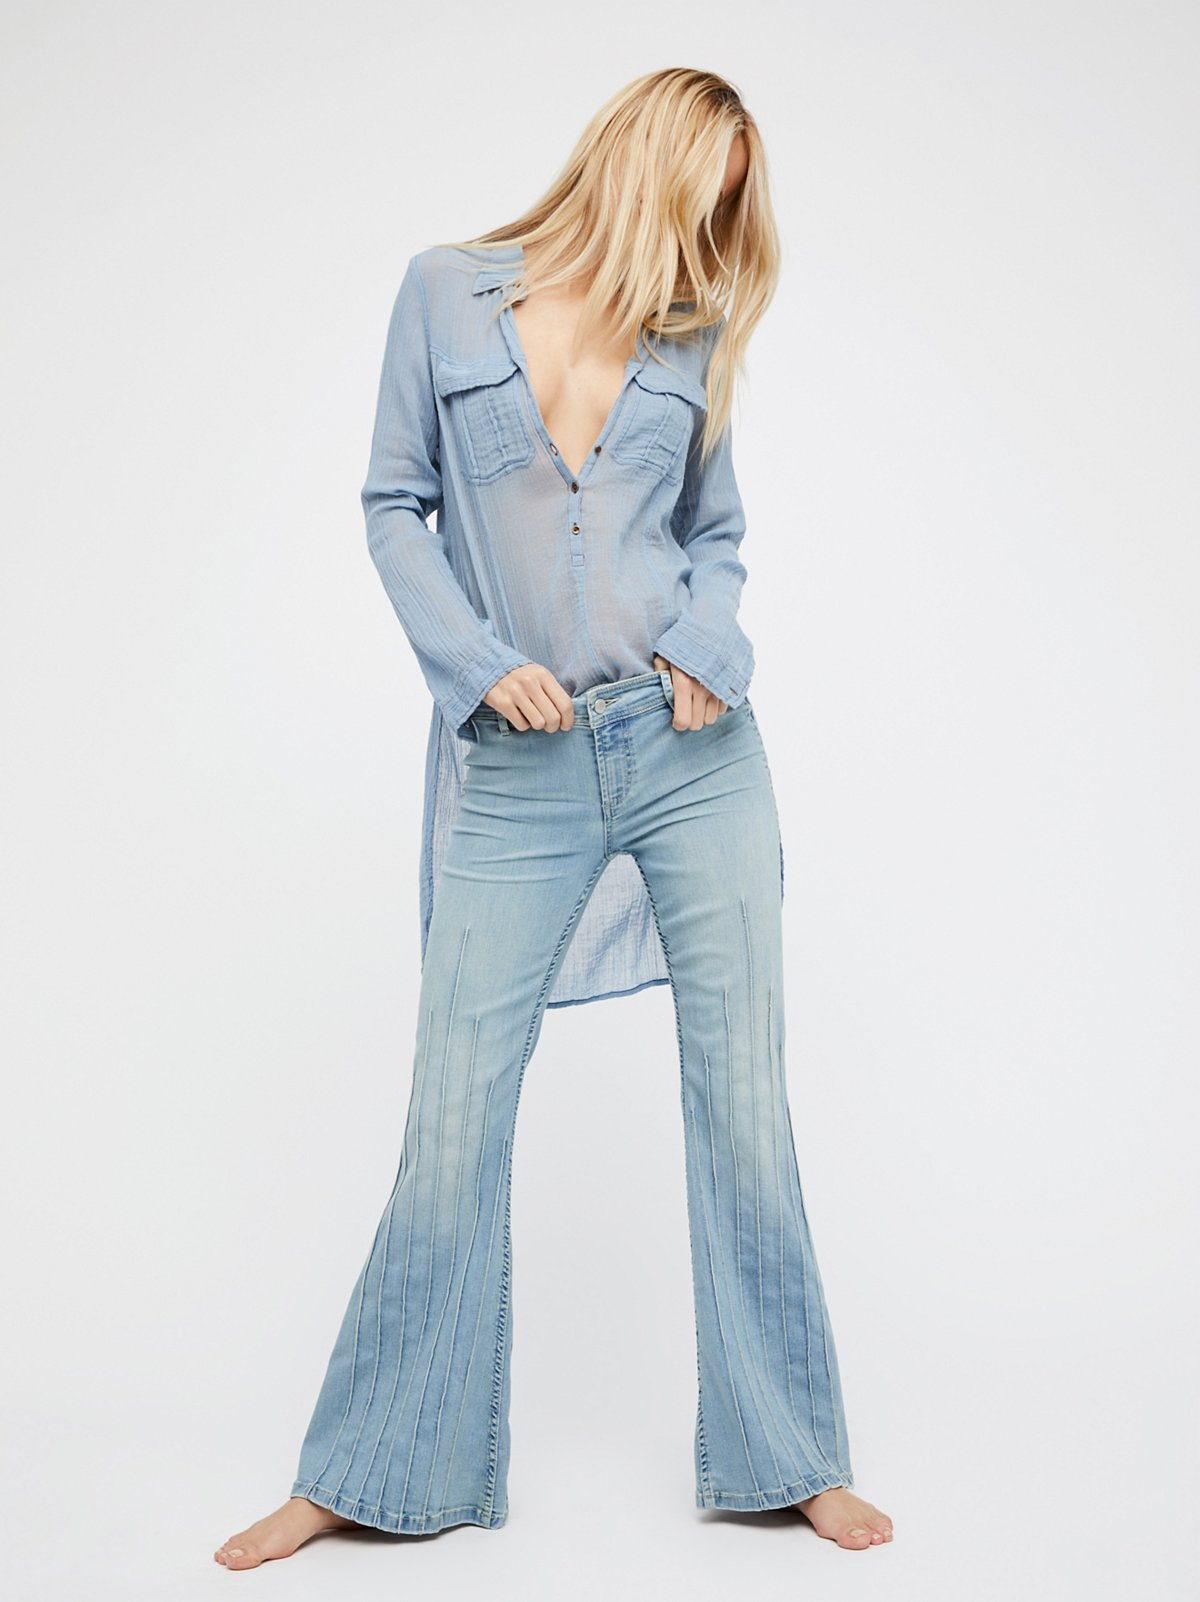 High Waisted Jeans - High Rise Jeans for Women | Free People